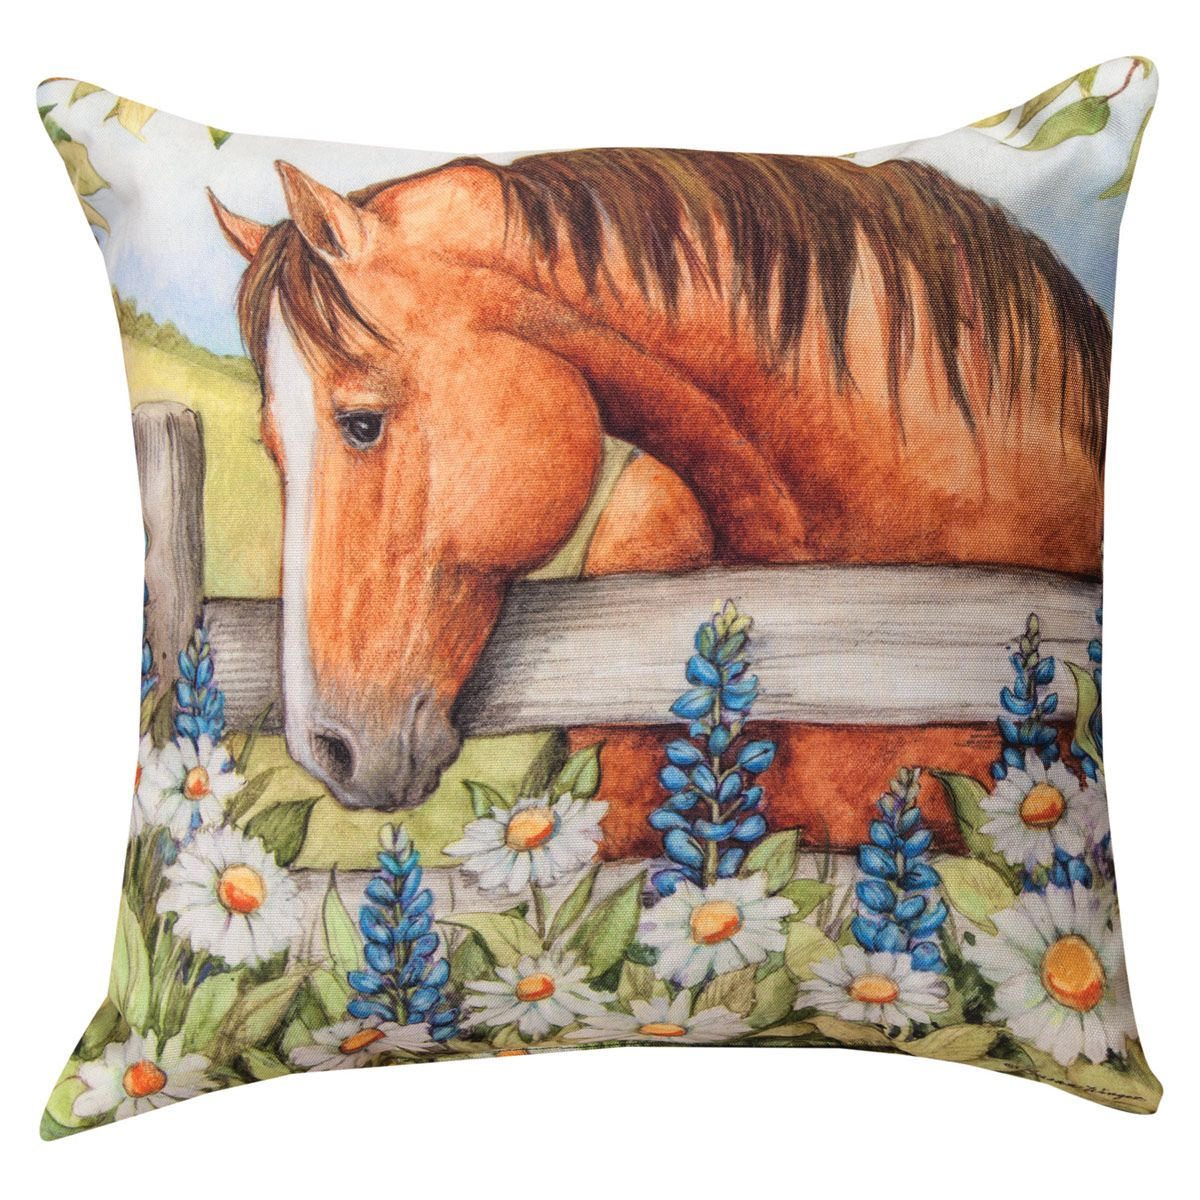 Wildflower Horse Pillow - Bluebonnets